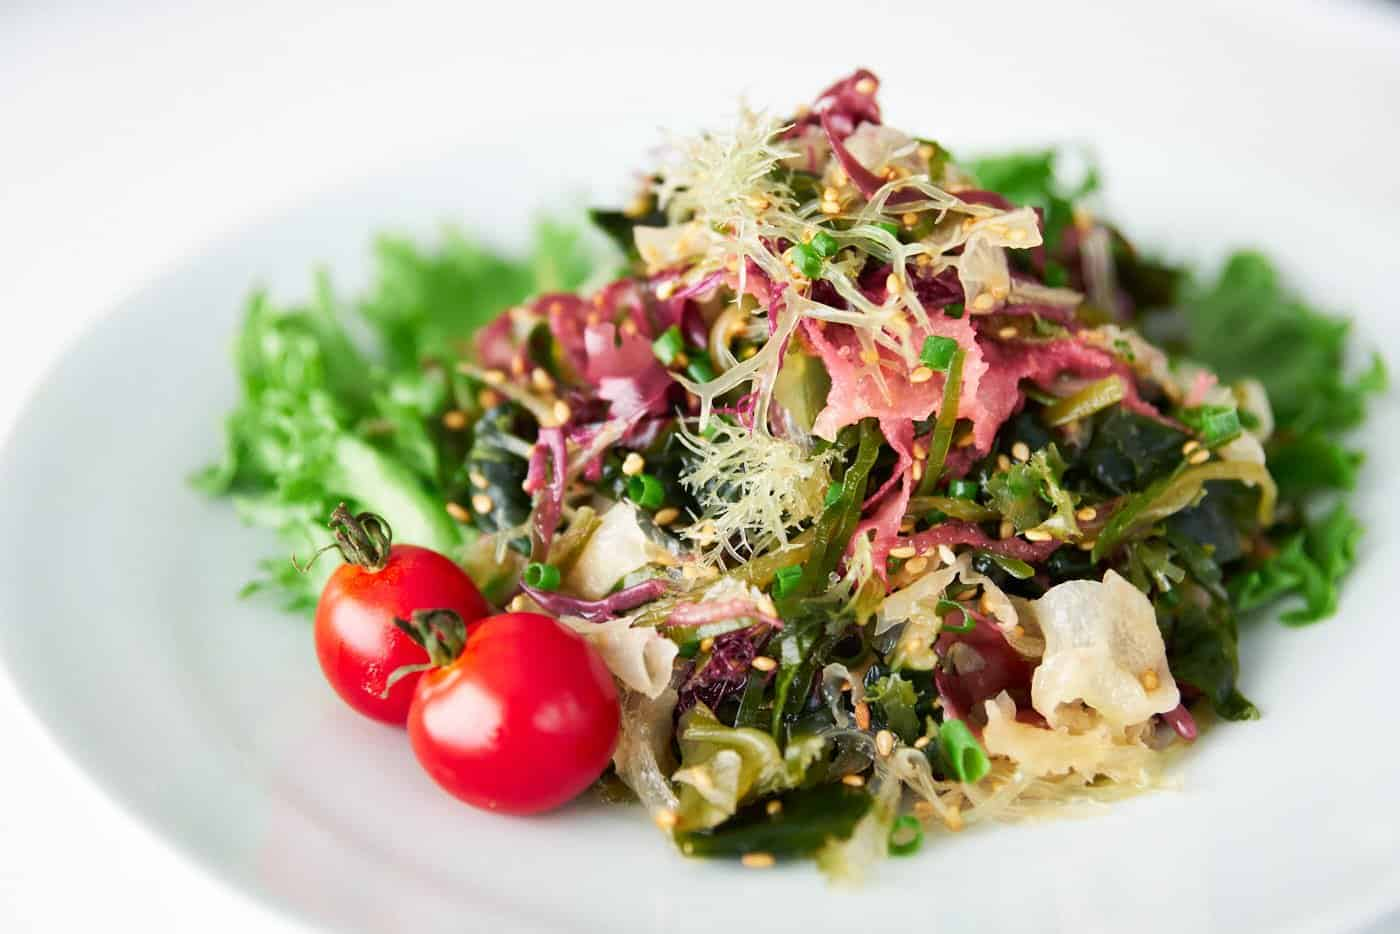 With a variety of seaweed tossed in a sesame ginger dressing, this seaweed salad is easy to make at home.